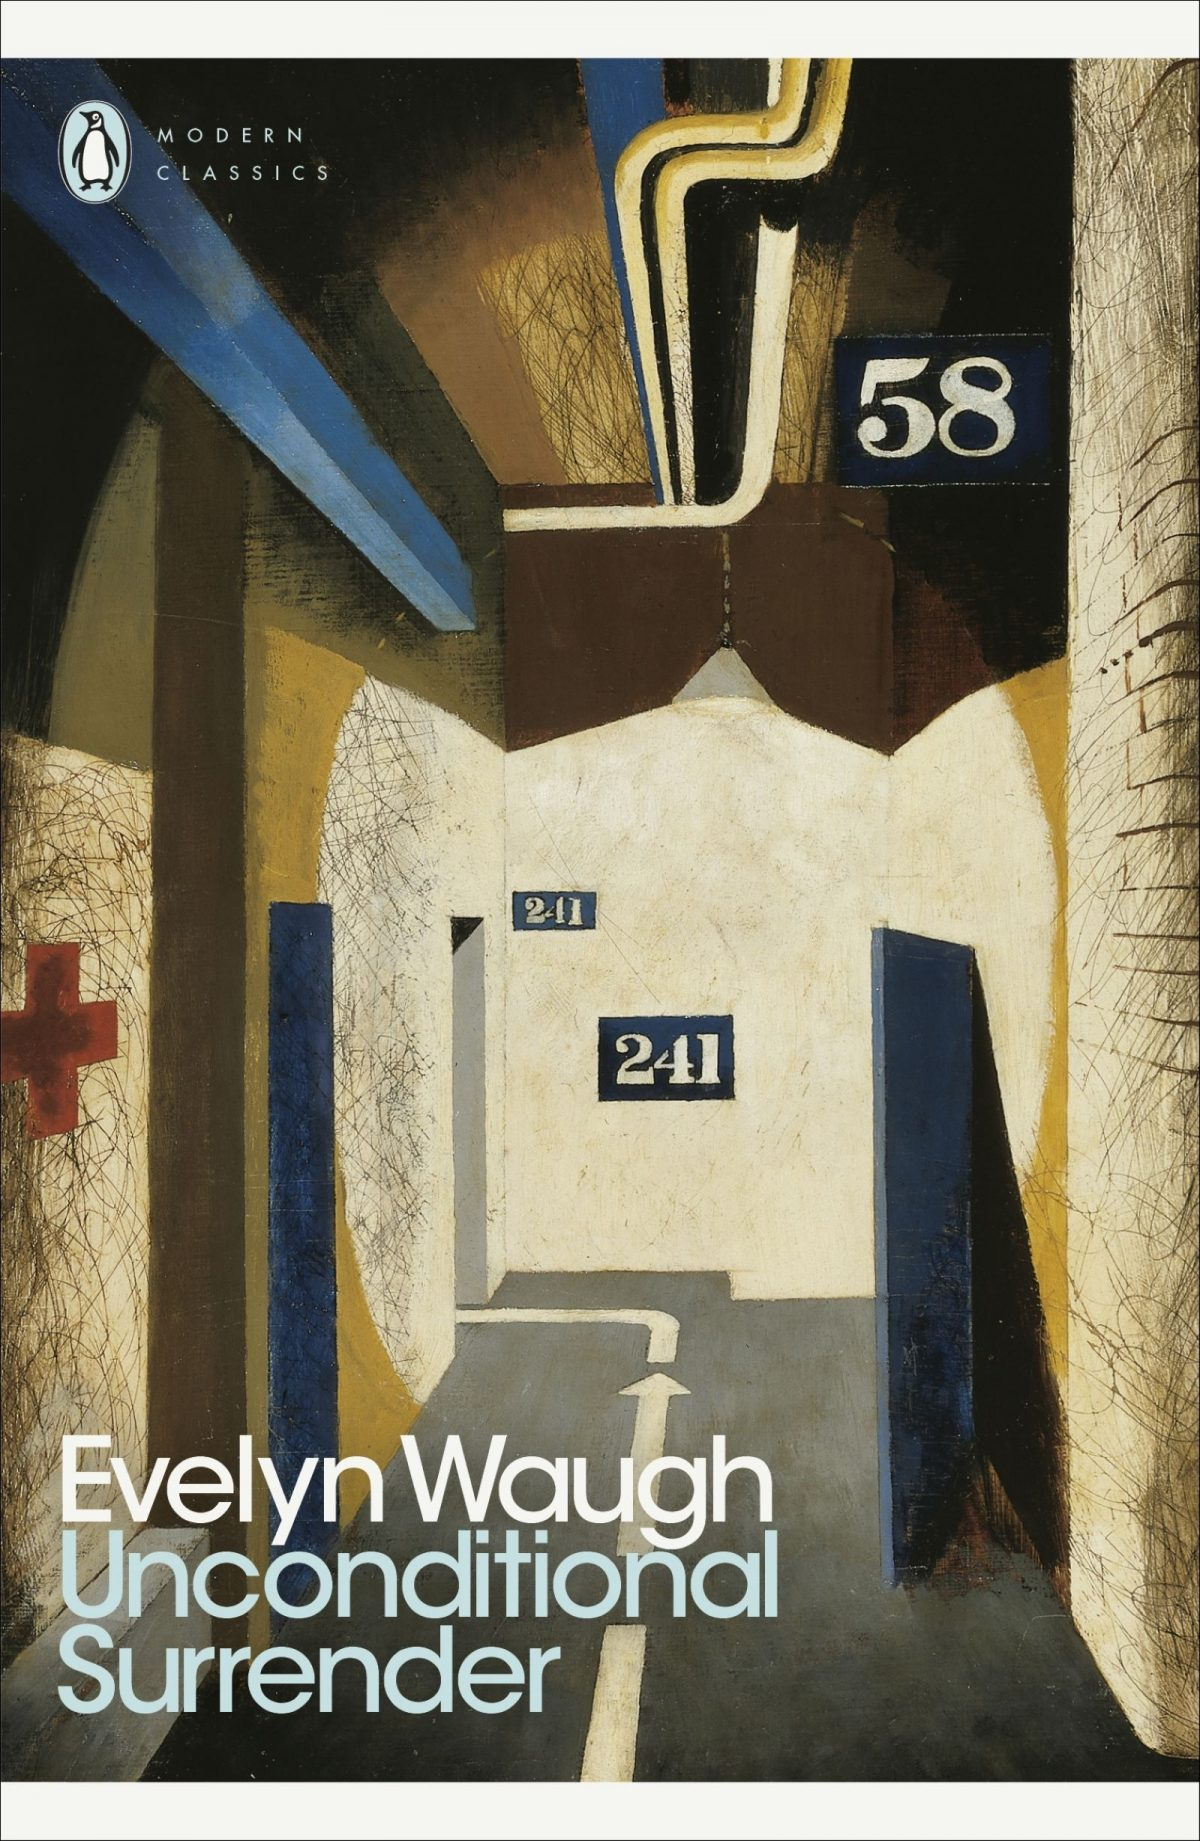 Evelyn Waugh, Unconditional Surrender, books, war, writers, Duncan McLaren